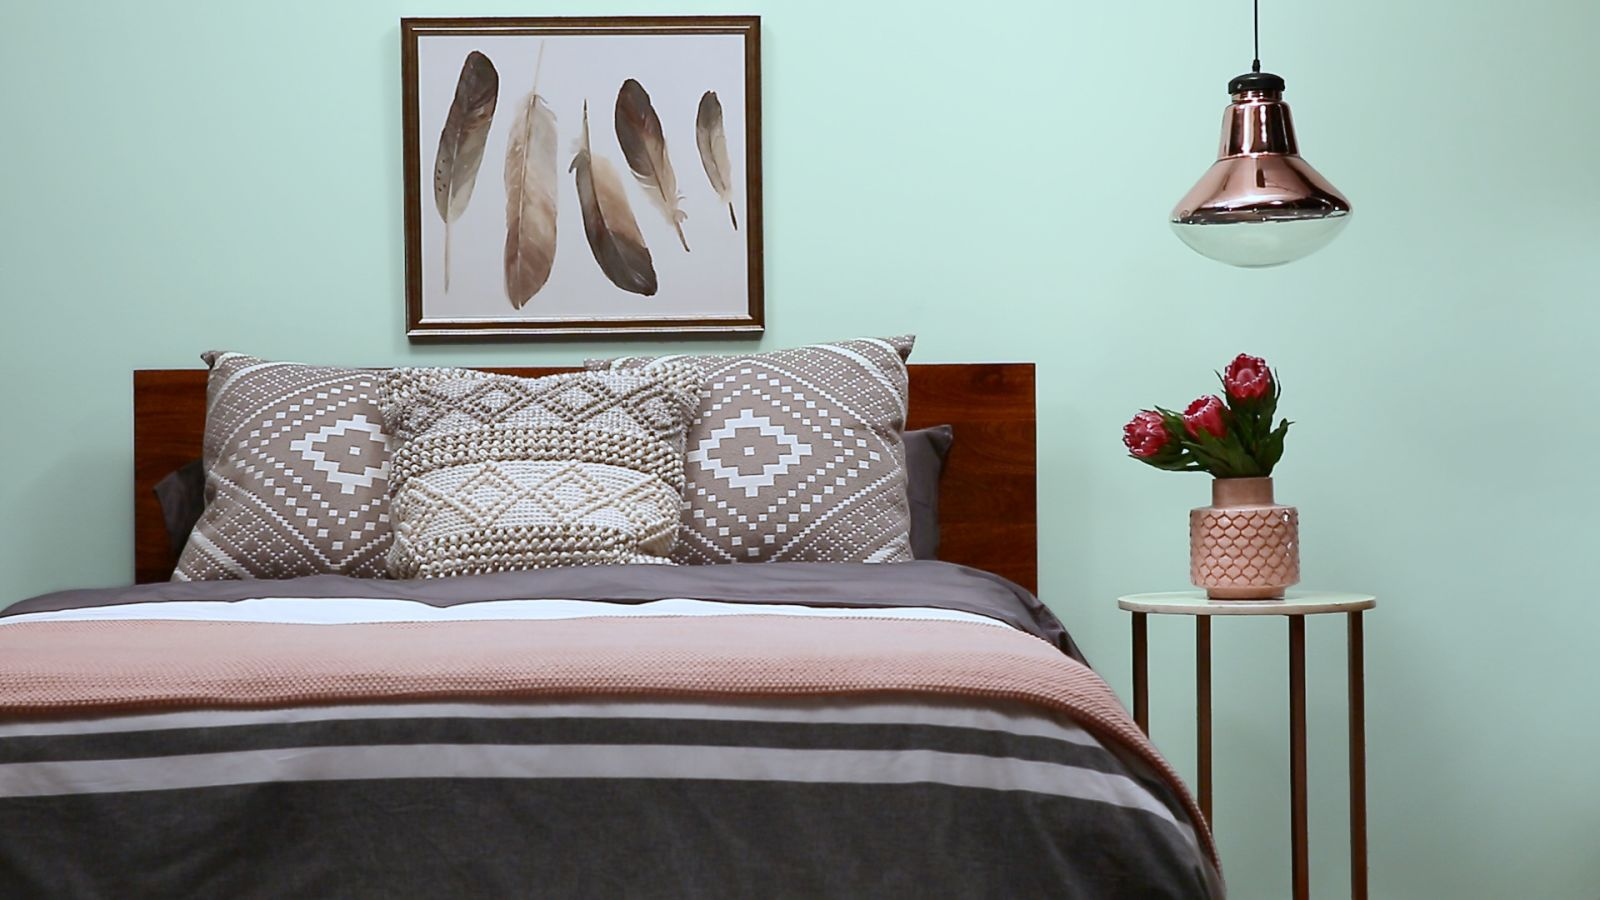 Good Neutral Paint Colors for a Relaxing, Natural Home